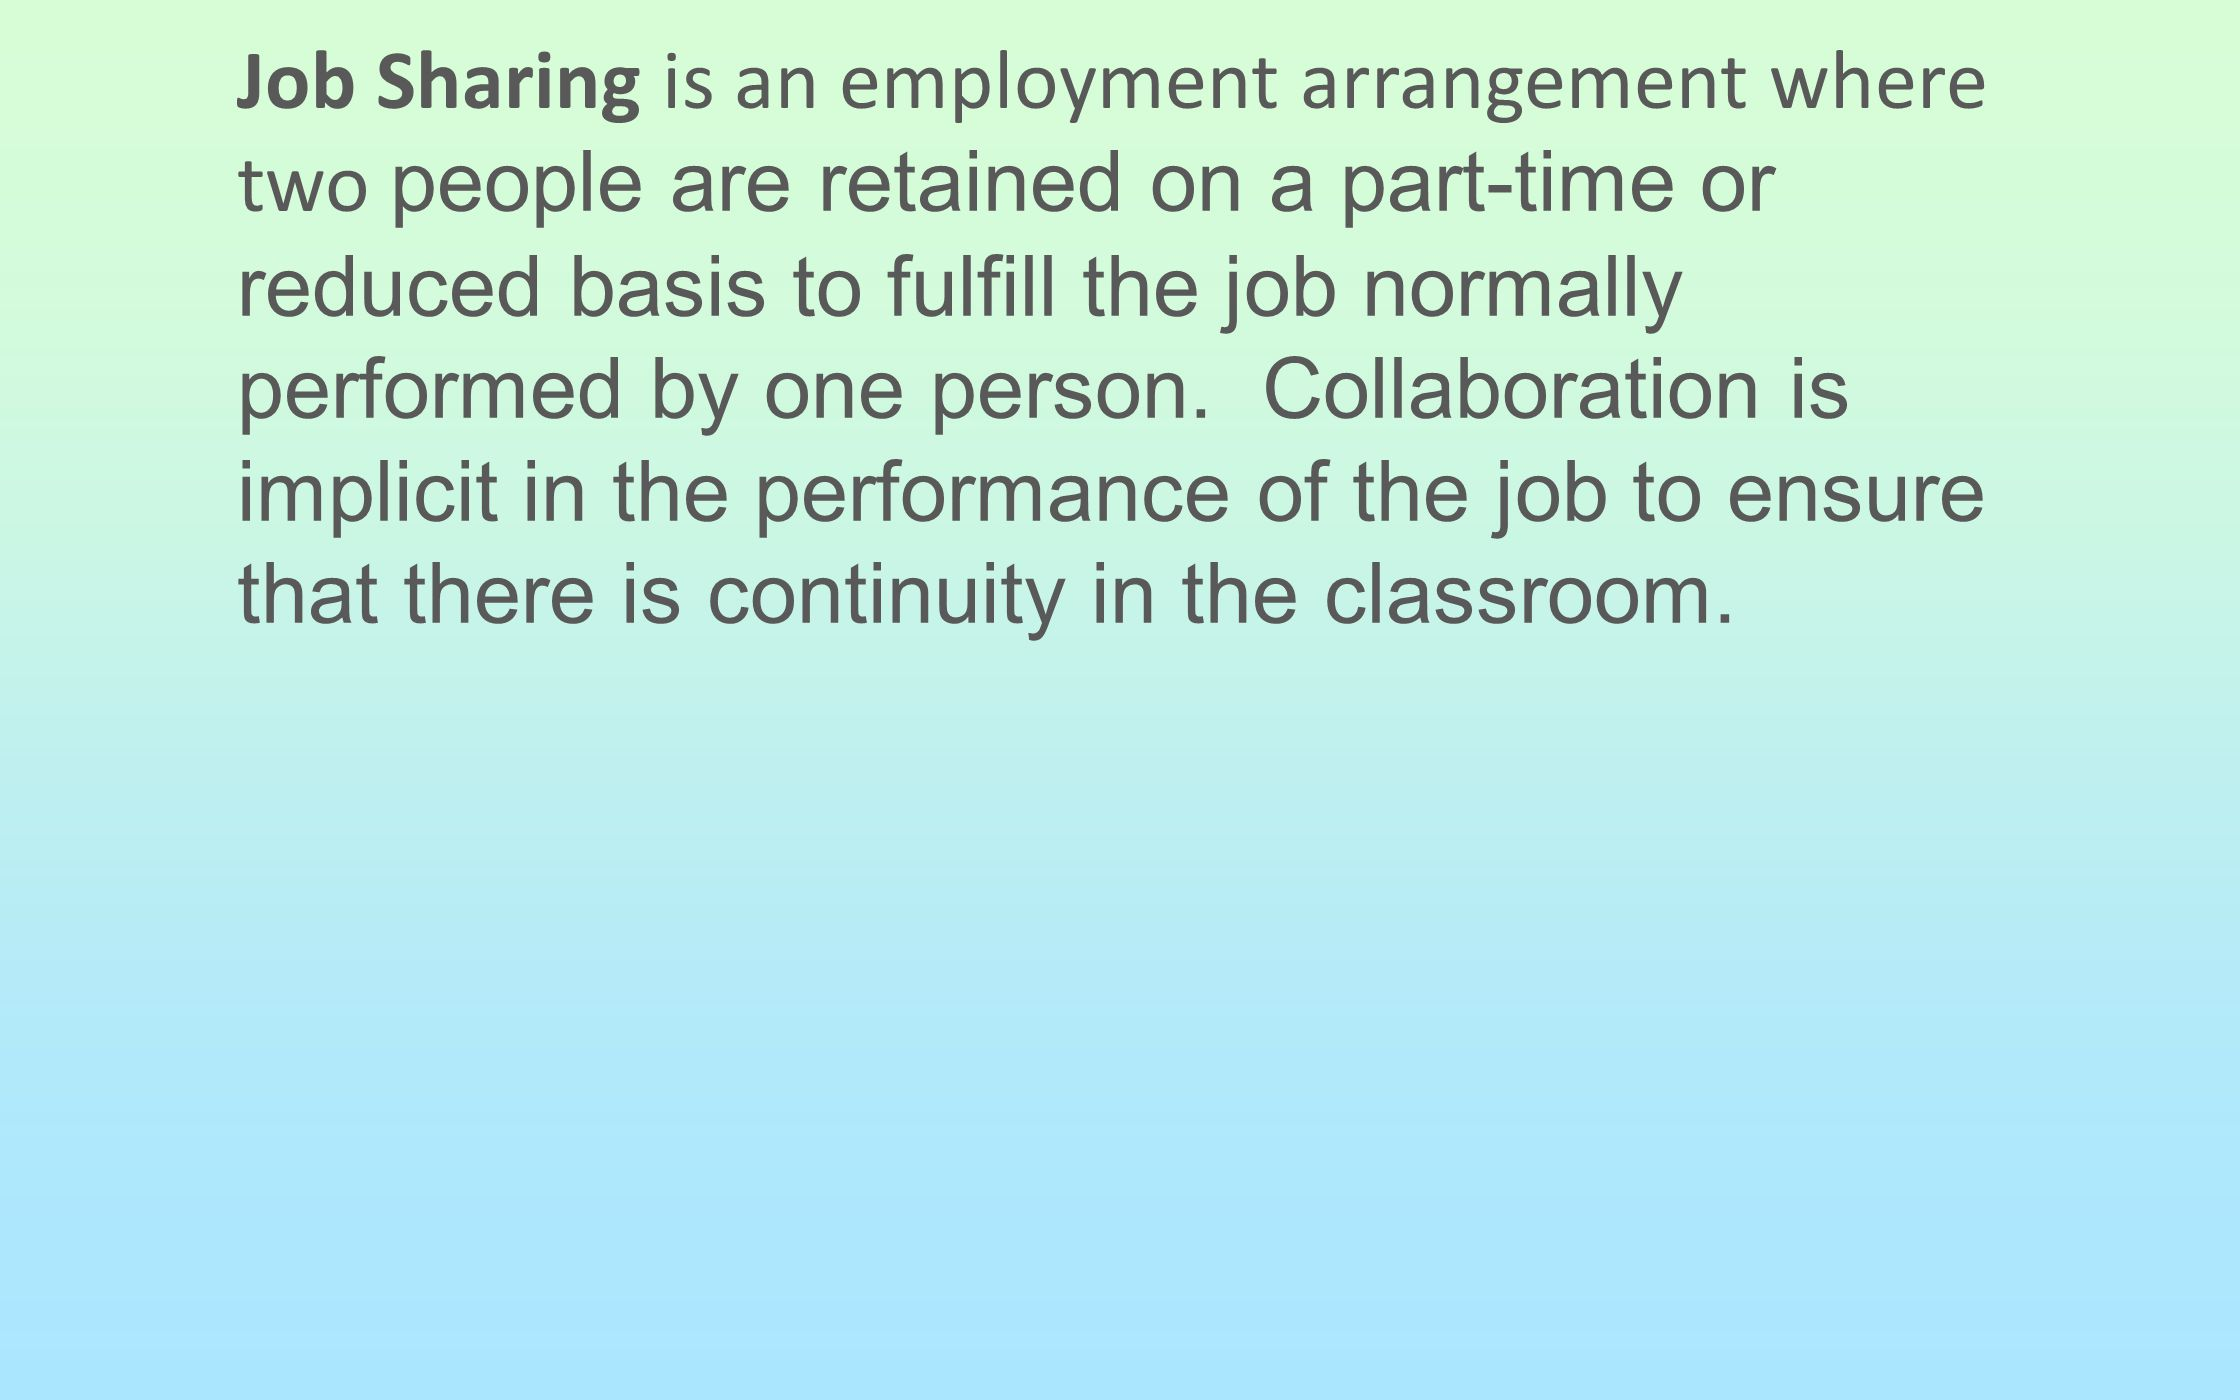 Job Sharing is an employment arrangement where two people are retained on a part-time or reduced basis to fulfill the job normally performed by one person.